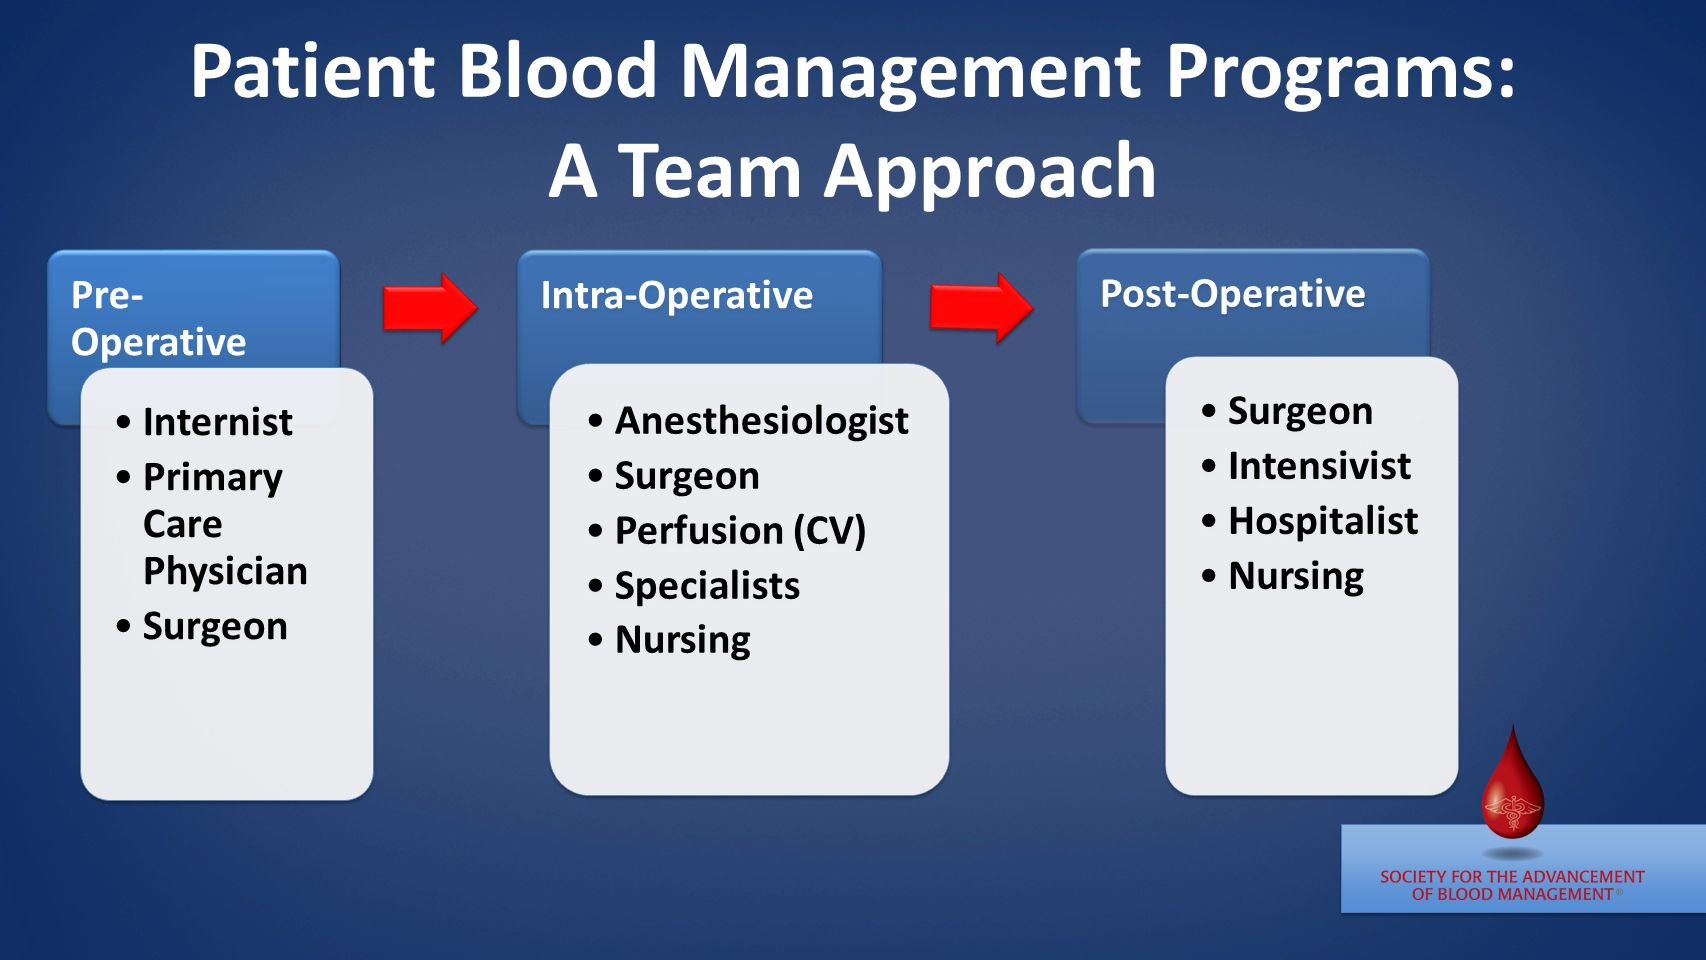 Patient Blood Management Programs: A Team Approach Pre- Operative Internist Primary Care Physician Surgeon Intra-Operative Anesthesiologist Surgeon Perfusion (CV) Specialists Nursing Post-Operative Surgeon Intensivist Hospitalist Nursing